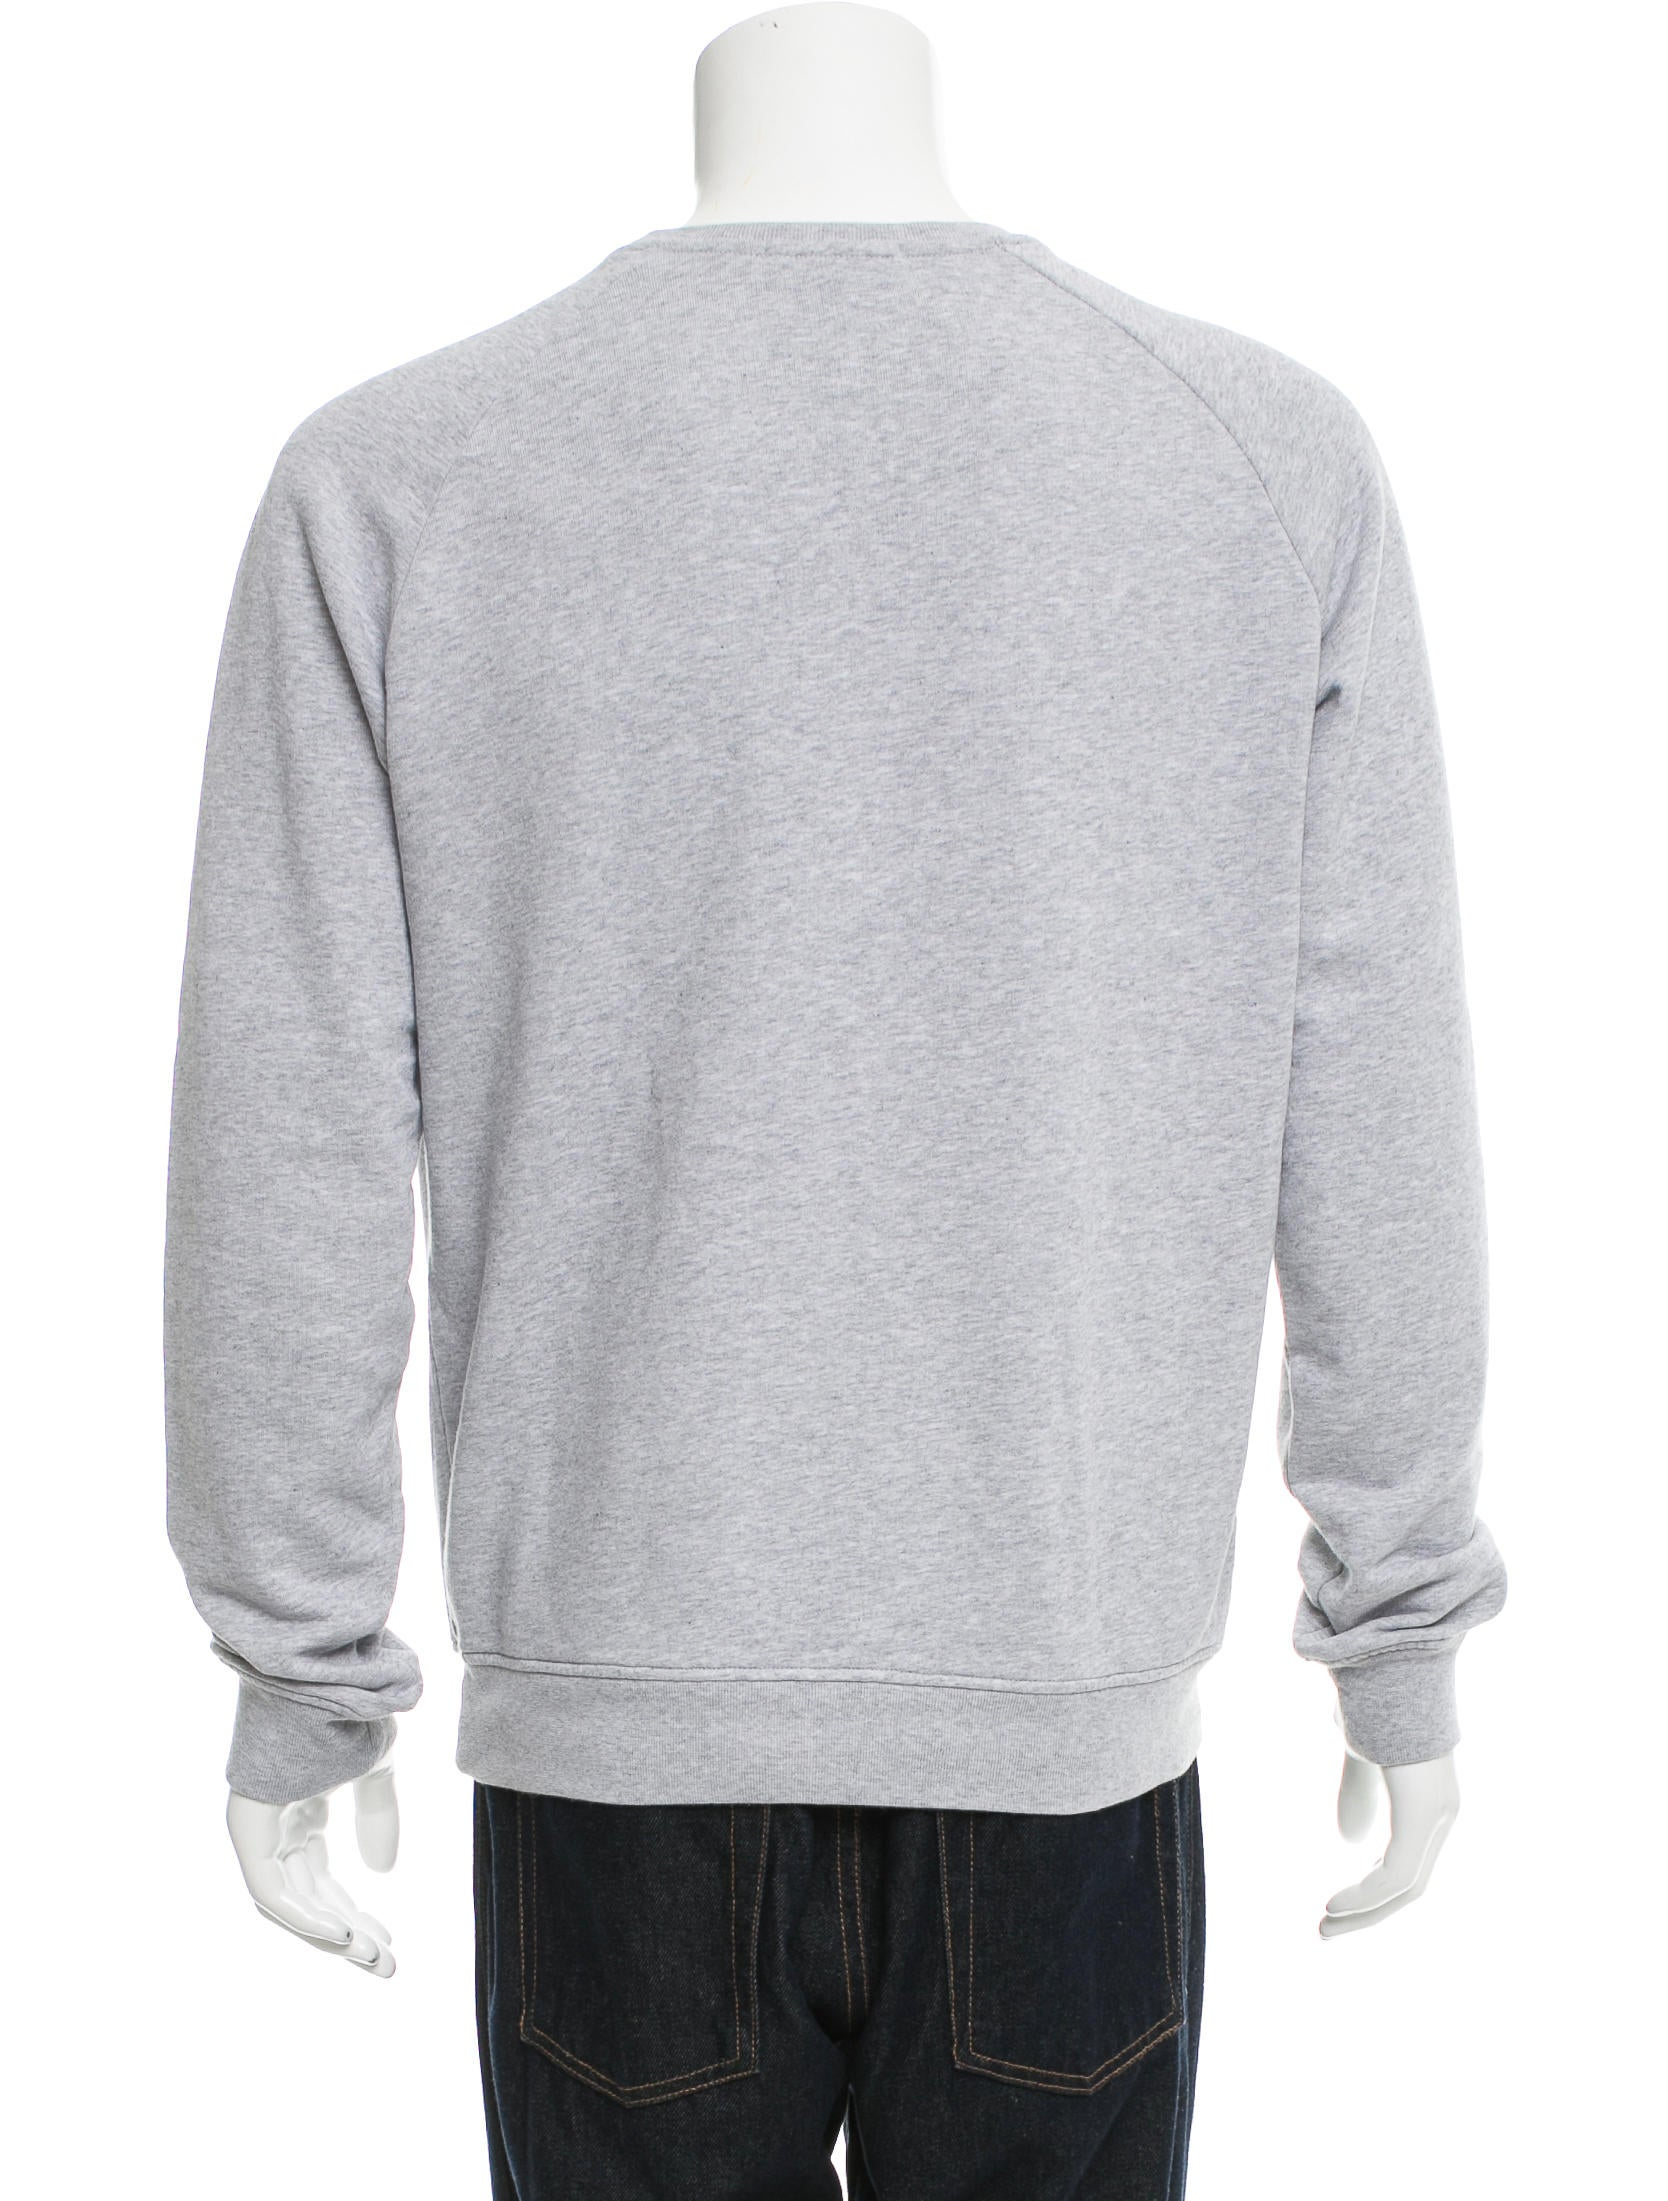 In spring, use a graphic crew neck sweatshirt as a top layer over your skinny jeans and a tomgirl tee to celebrate your chance to get outdoors after a long winter. Once the summer sun beckons, you may think it's time to put away your sweatshirts.